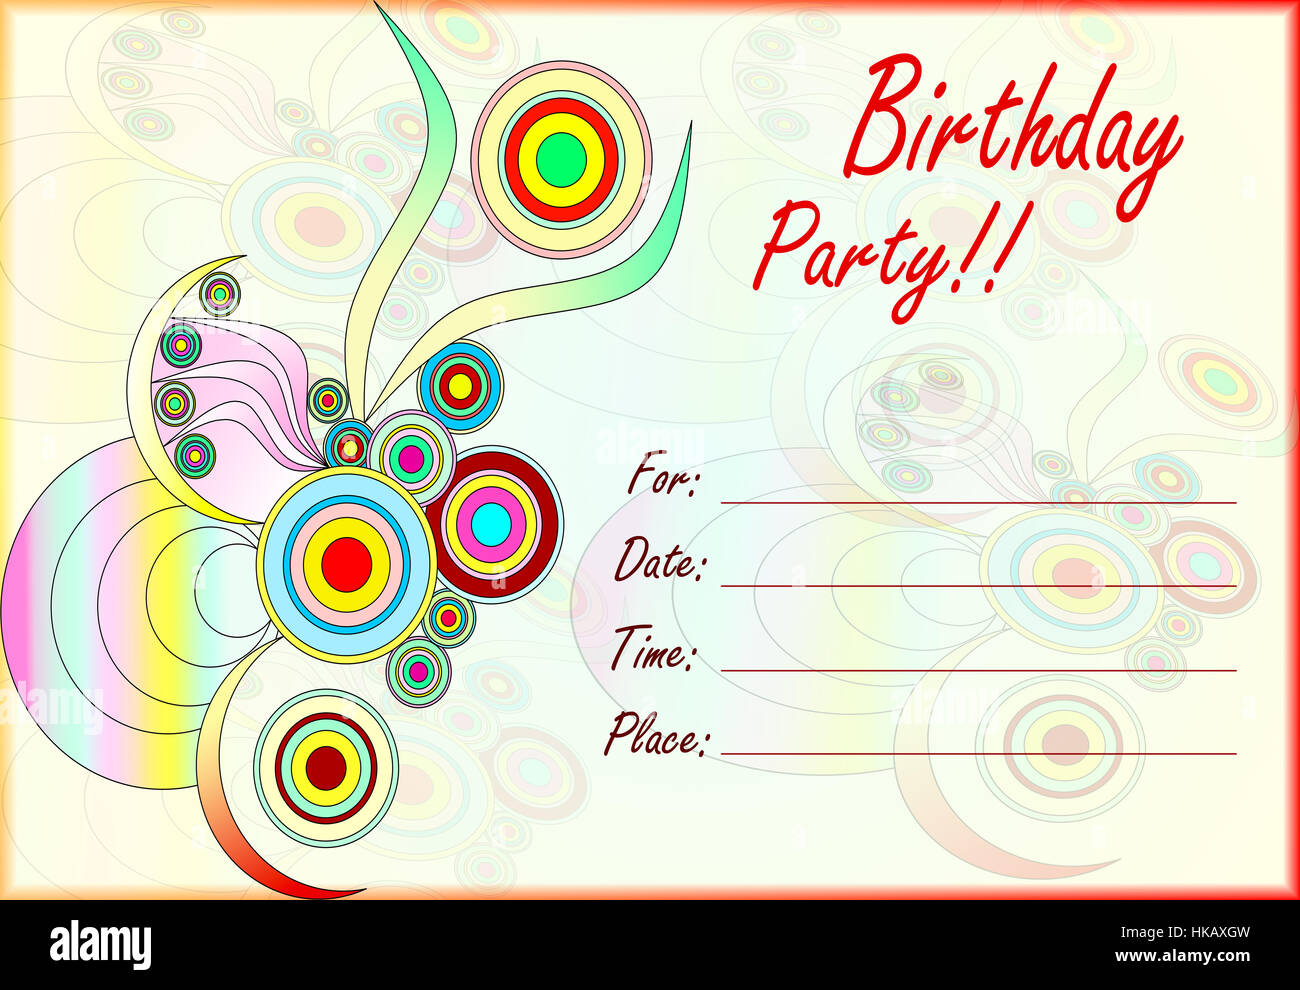 colorful birthday party invitation for kids with empty lines for ...